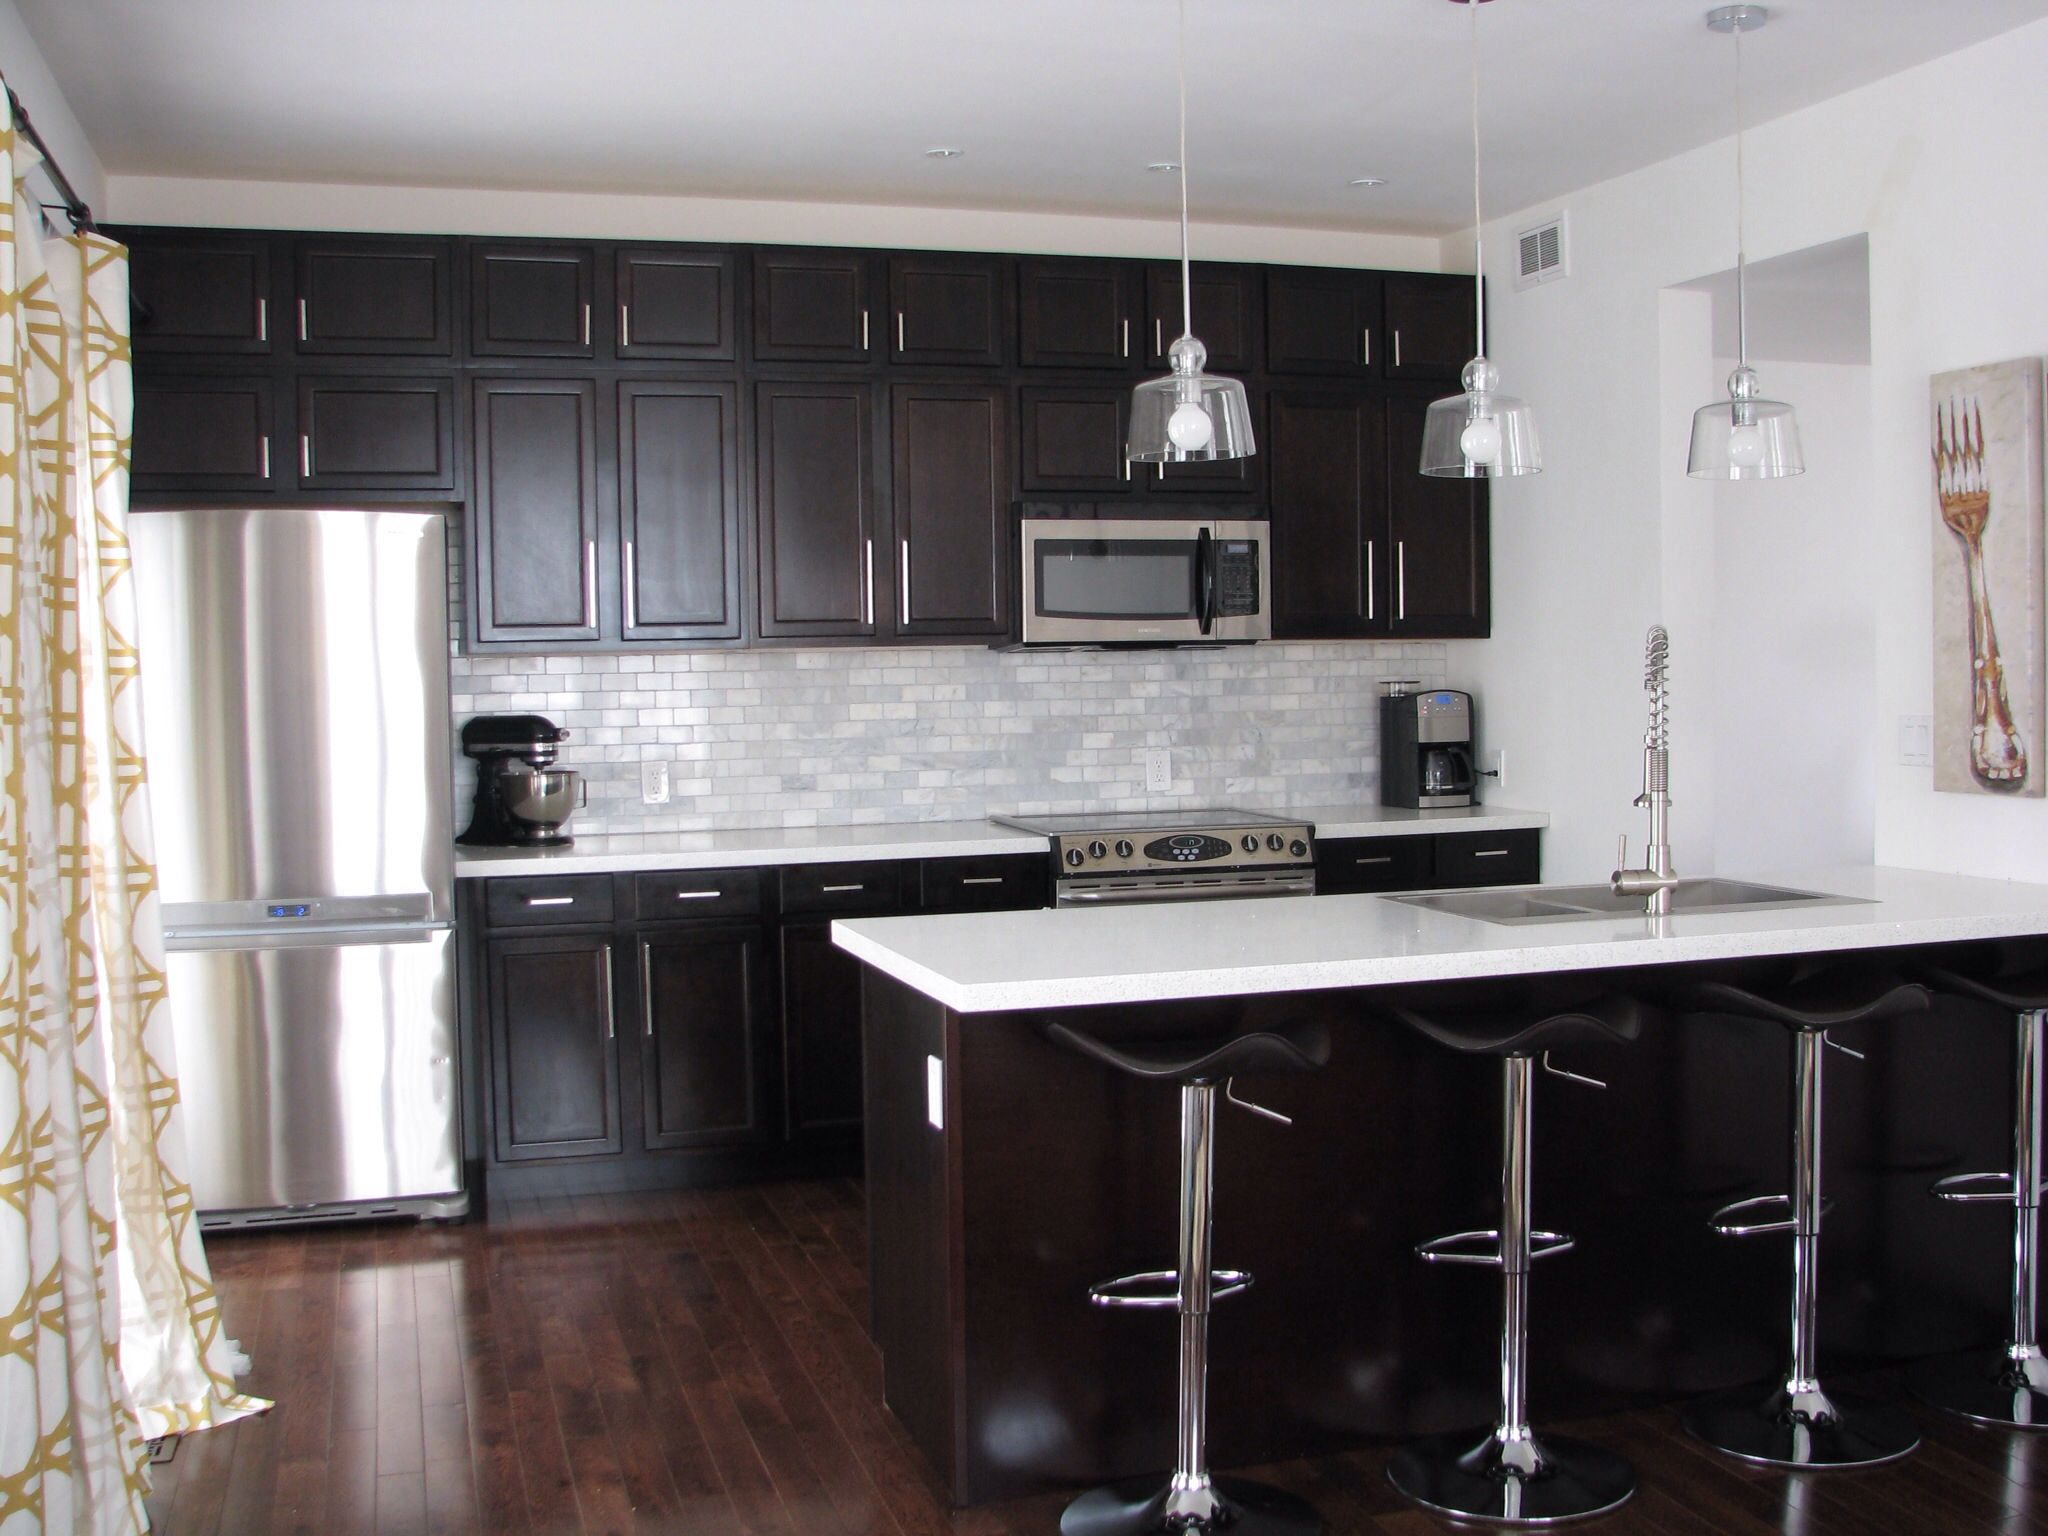 Kitchen with dark cabinets and white quartz counters and for Black kitchen cabinets with white marble countertops